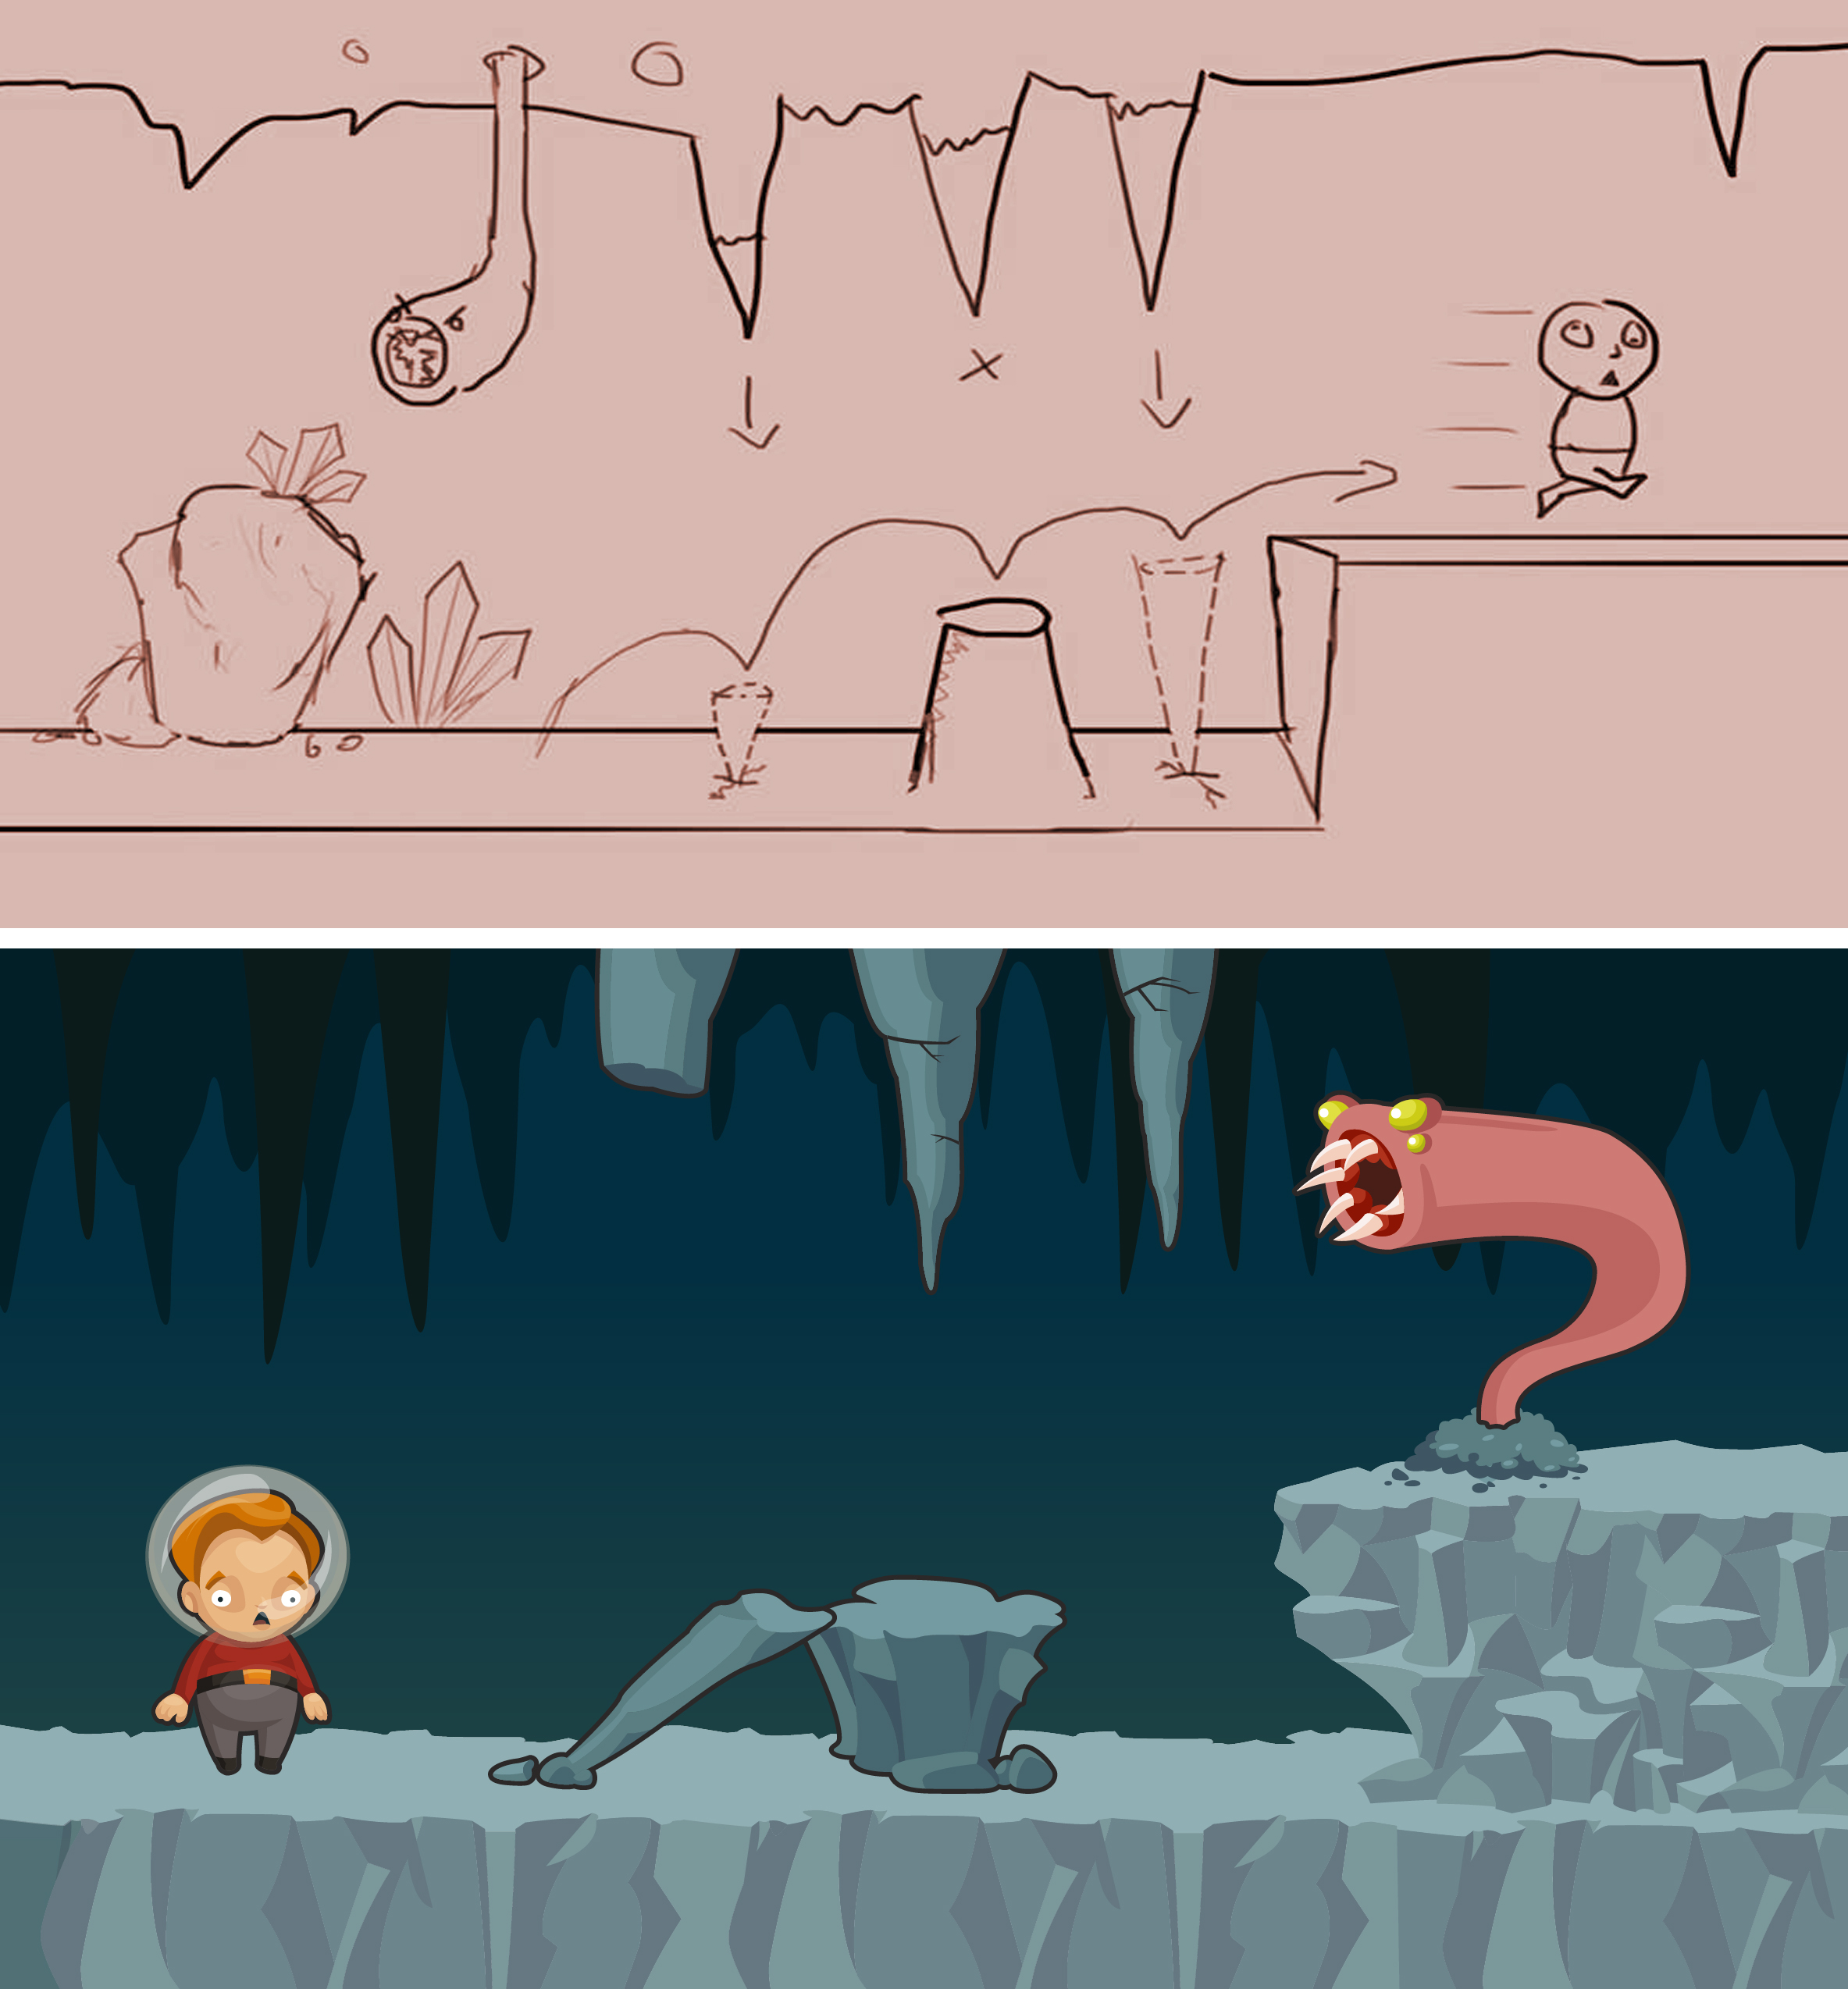 Top to bottom sketch to mockup of a concept for Oblivious Adventurer, showing a character's interaction with spikes in a cave and an enemy worm like creature